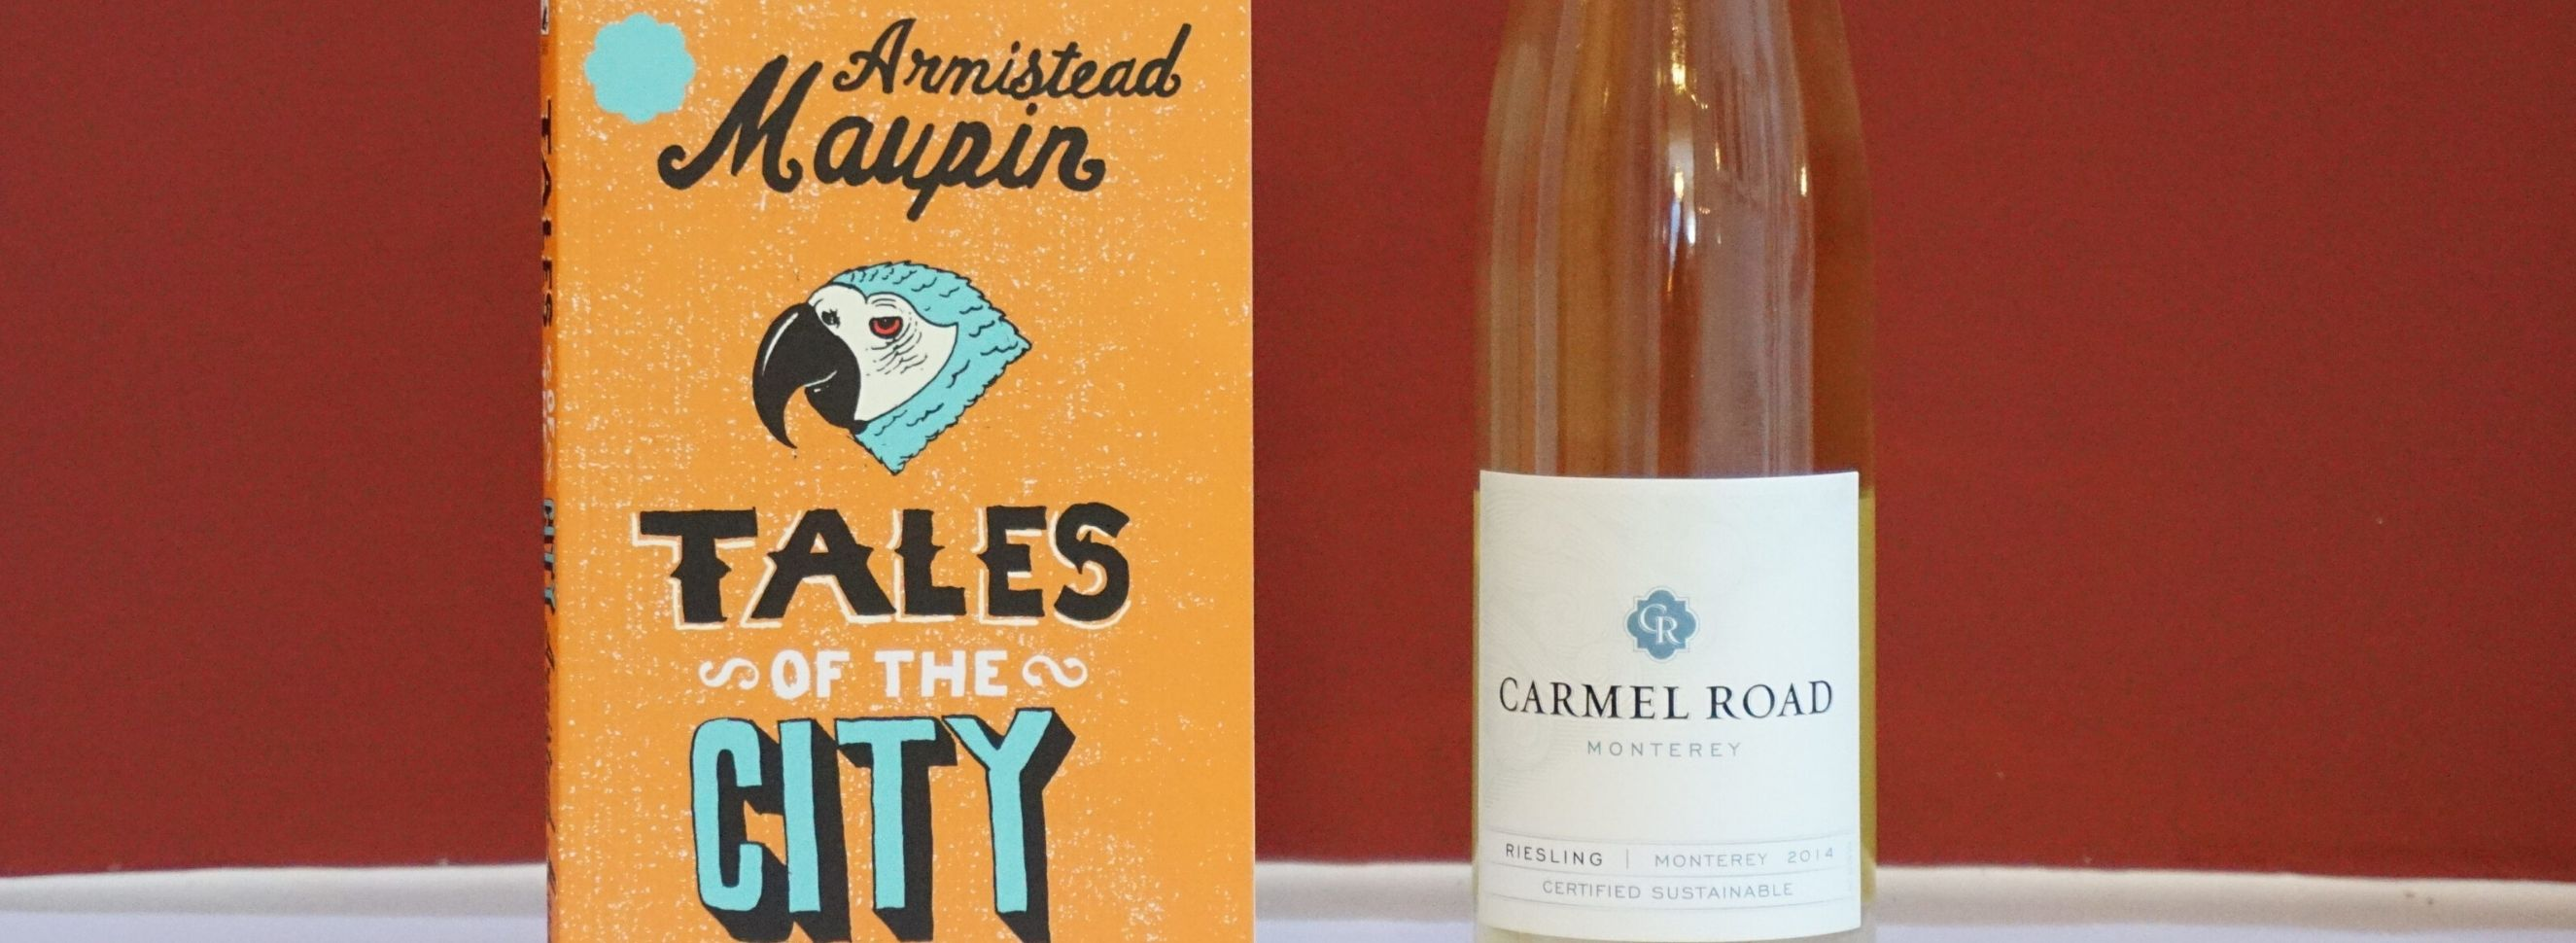 Tales of the City – Riesling Carmel Road 2014